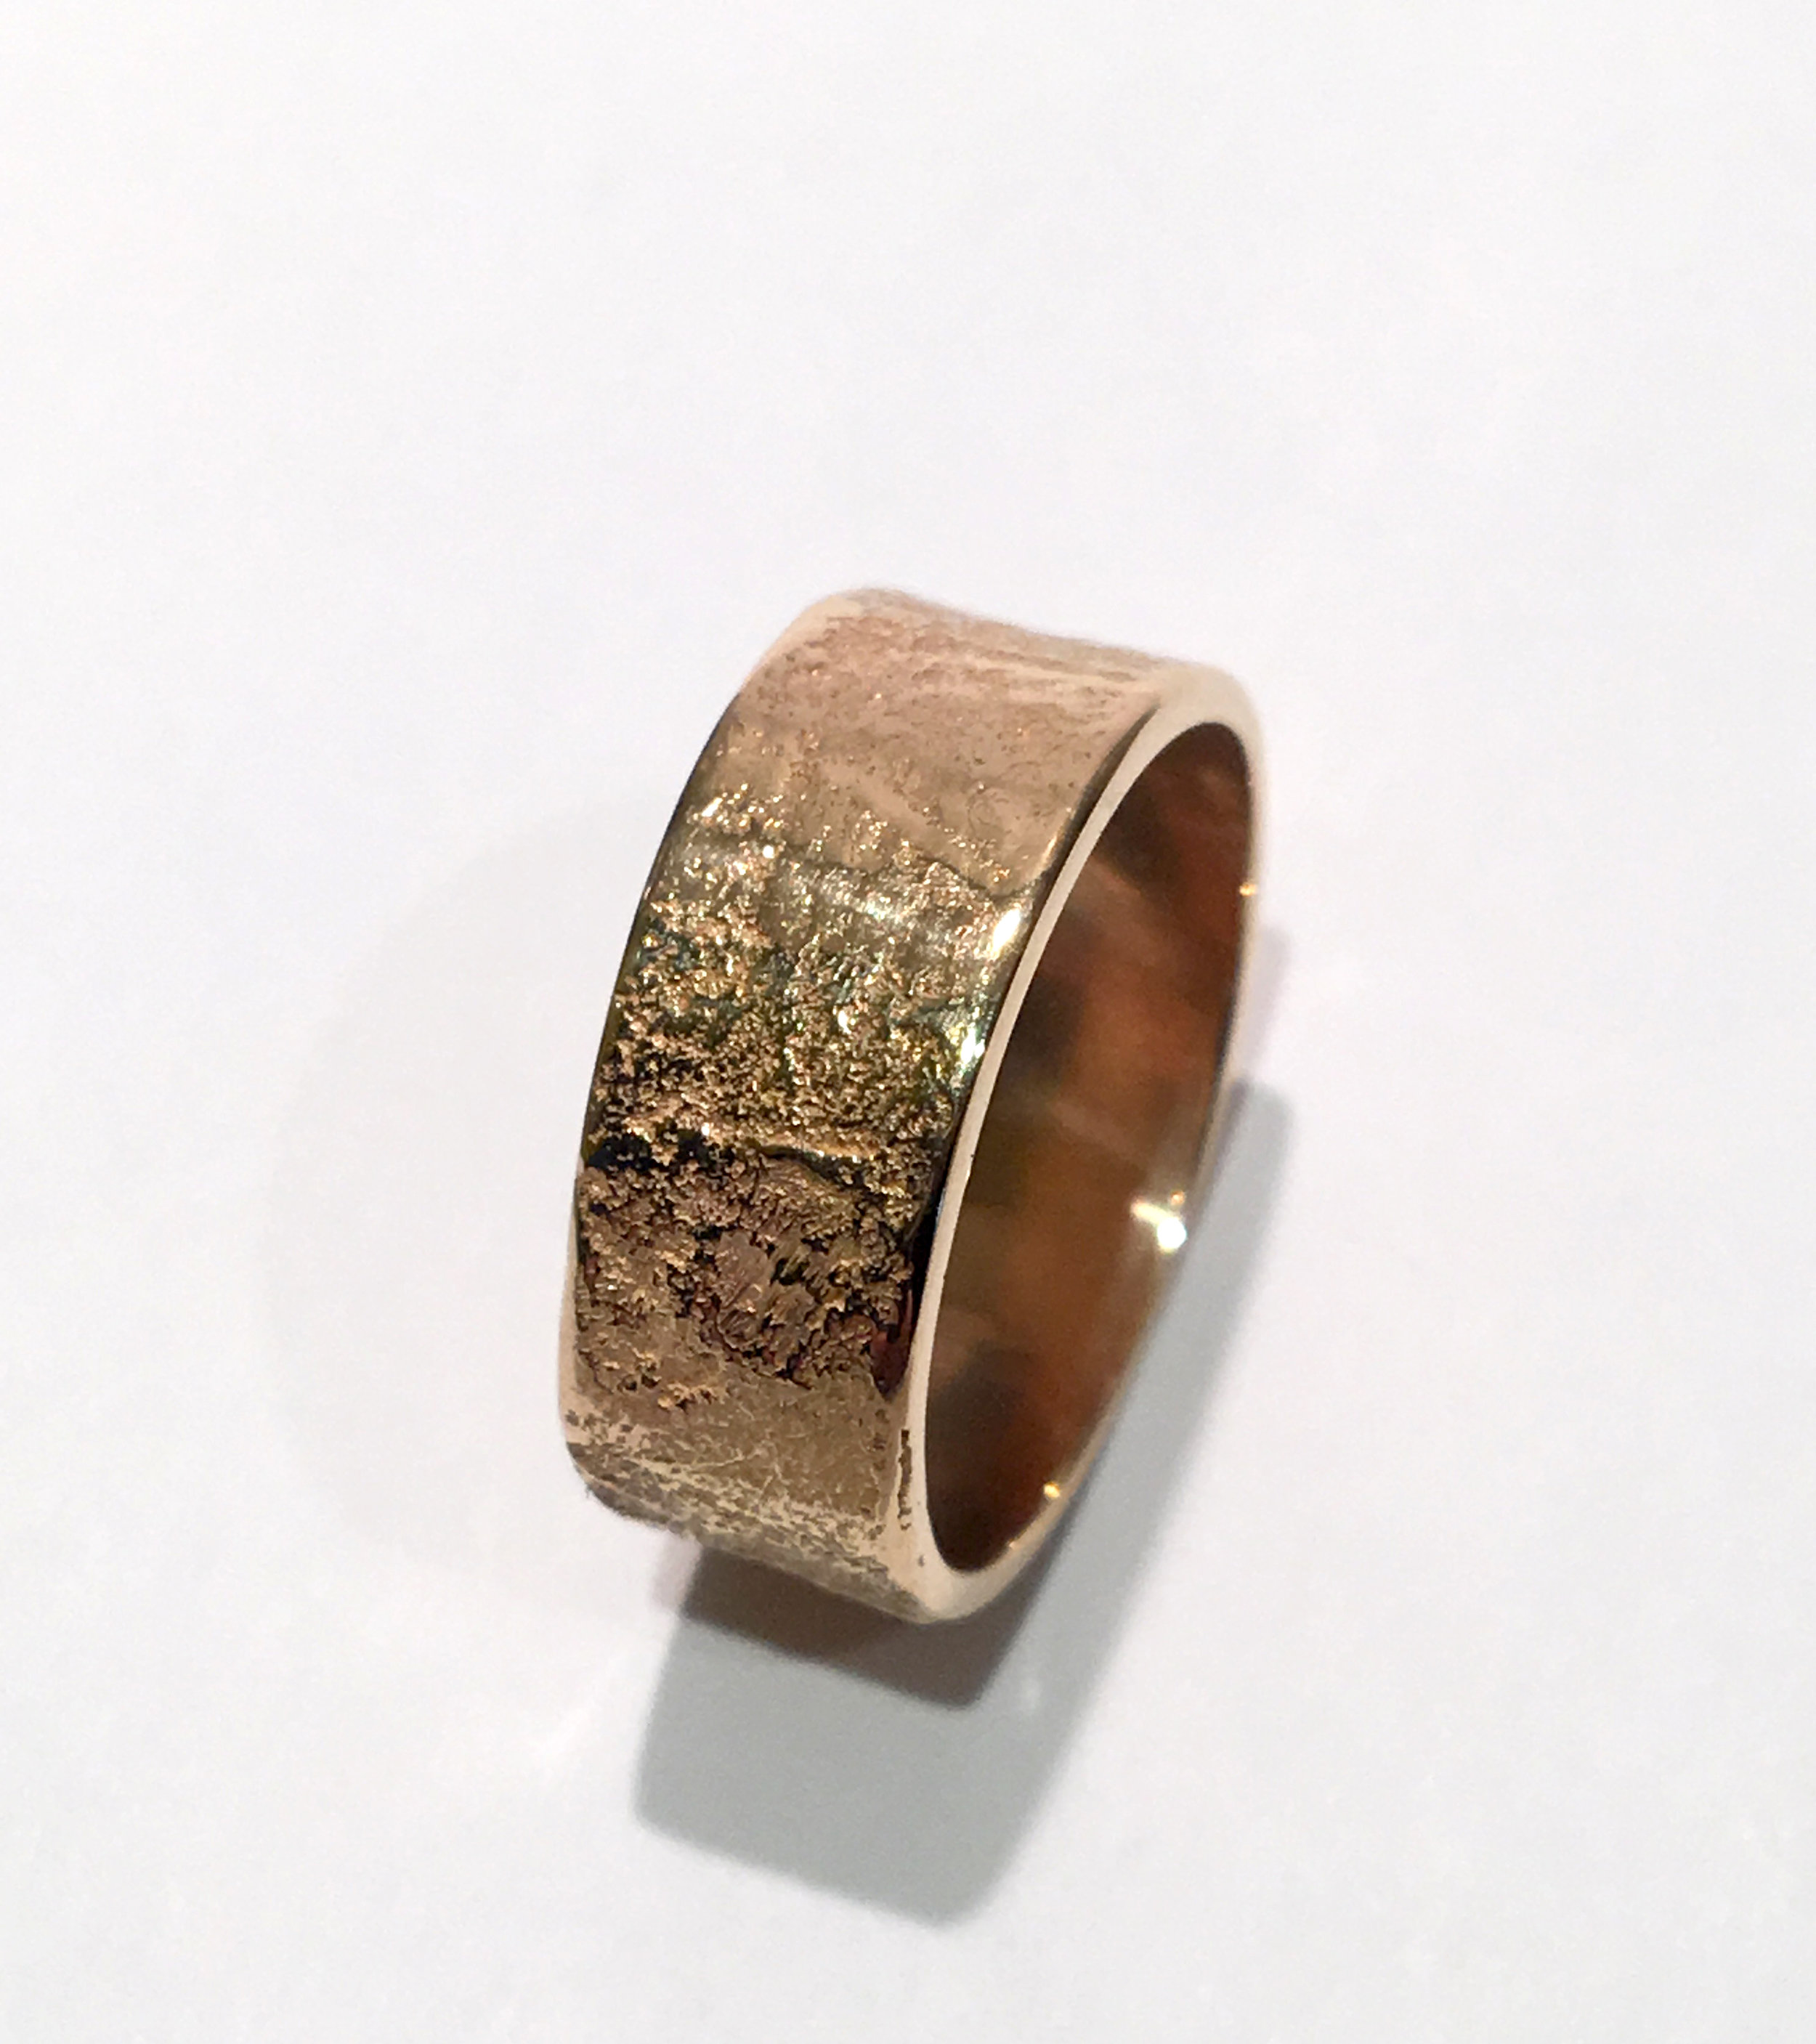 HOLIDAY SALE!!! Japanese Paper Texture Rings in 18K 14K or 10K pre-order now at sale prices until December 31st